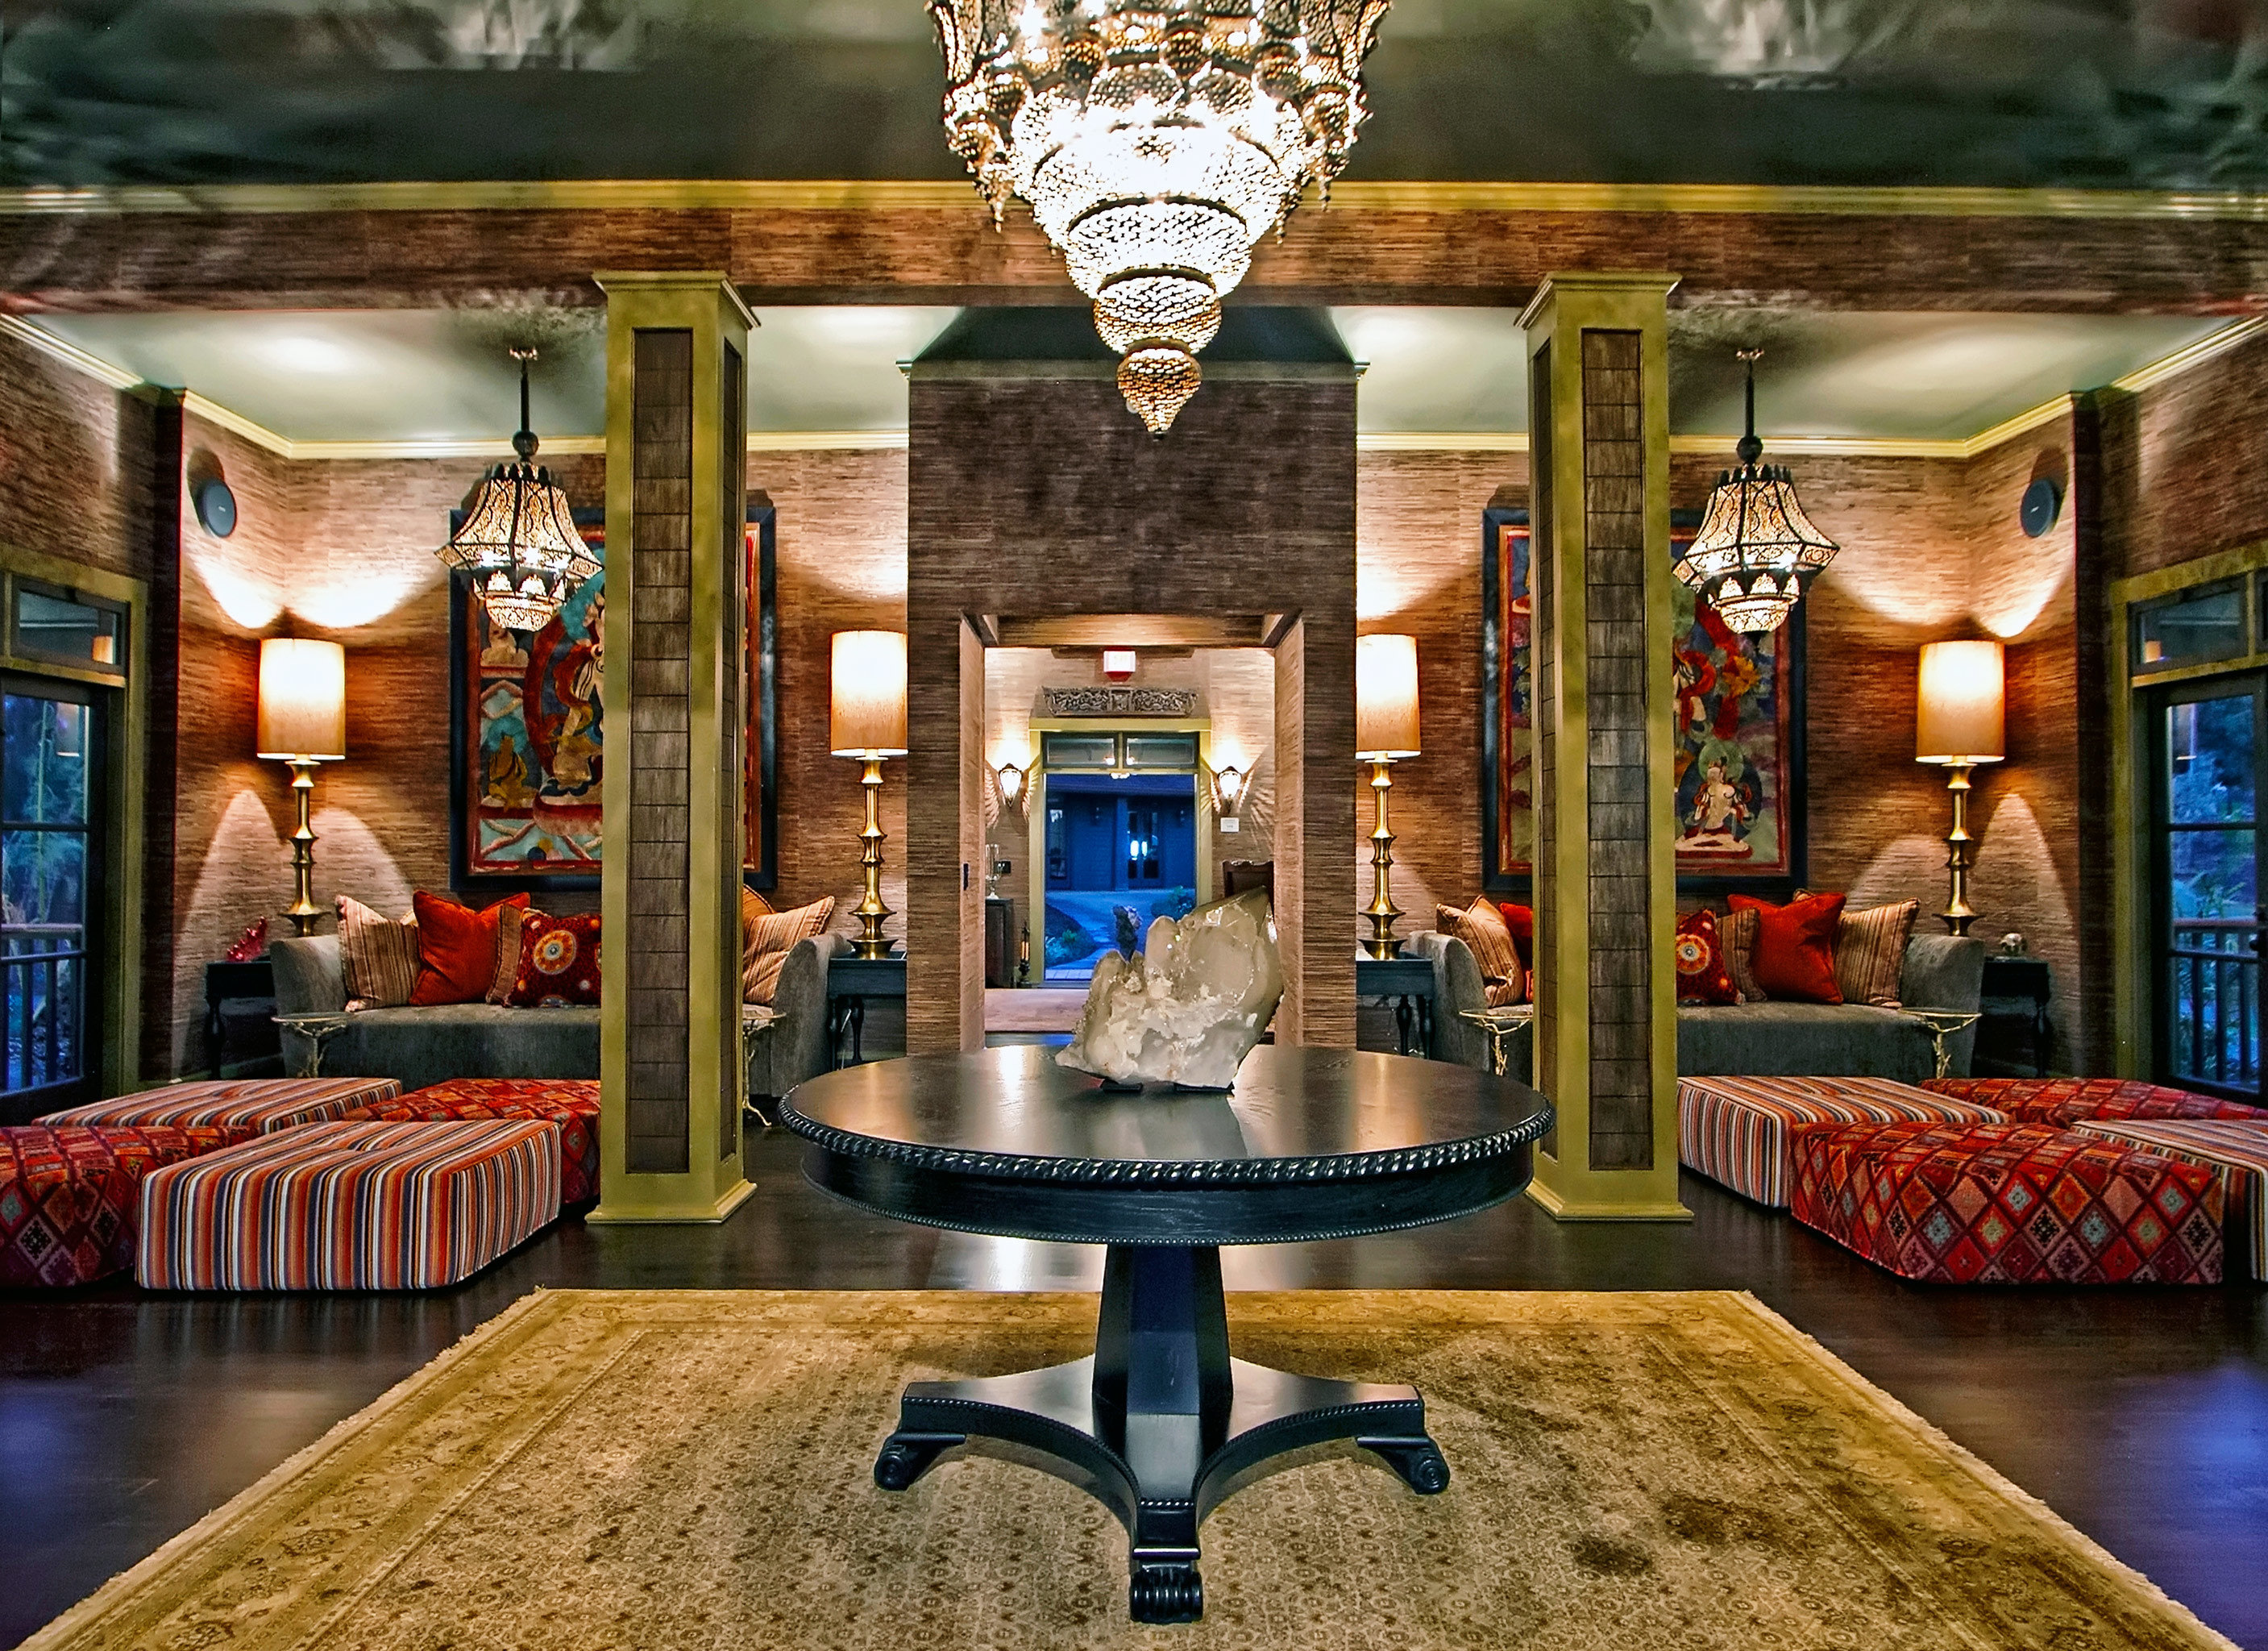 Beach Boutique Hotels Eco Hotels Lounge Luxury Travel Modern Romance Lobby lighting mansion home Bar screenshot Boutique retail colorful